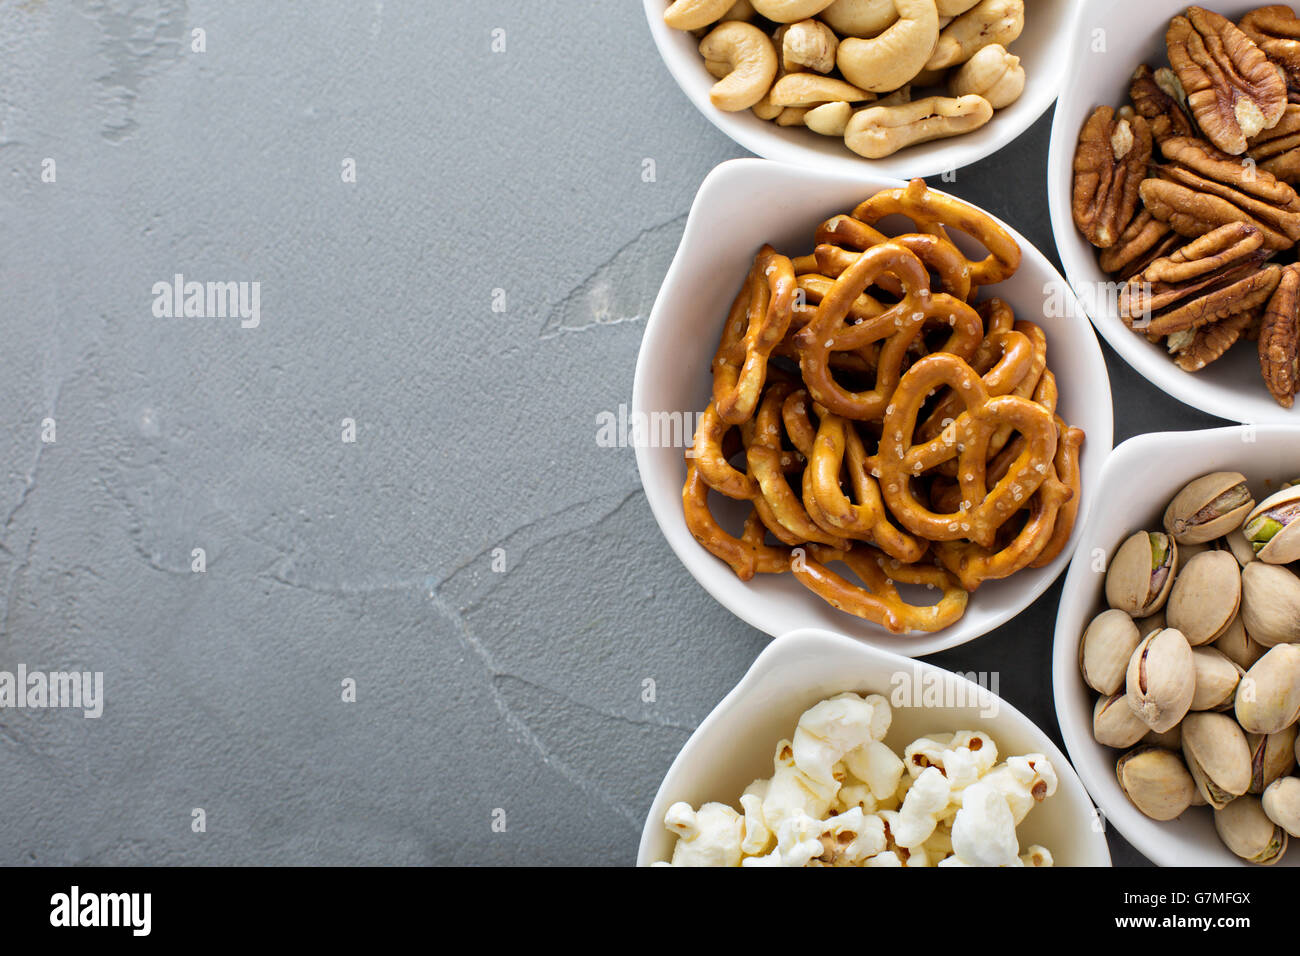 Variety of healthy snacks in white bowls - Stock Image